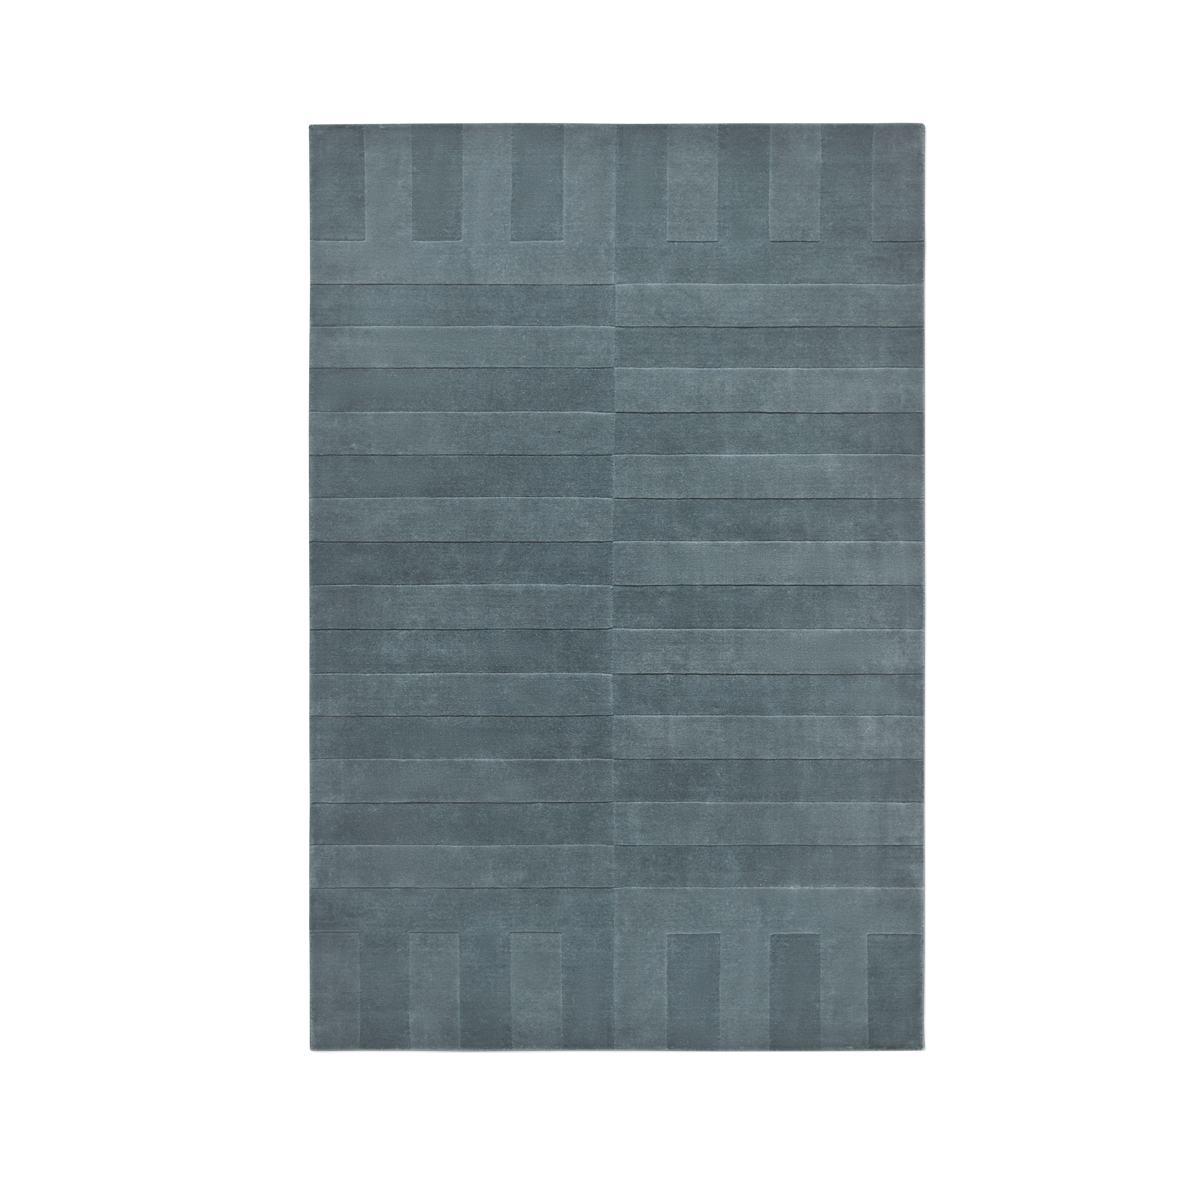 Product image of the plush rug Lux 2 in the color Petroleum . The pile of the rug is cut in different heights creating a blocky pattern across the rug.